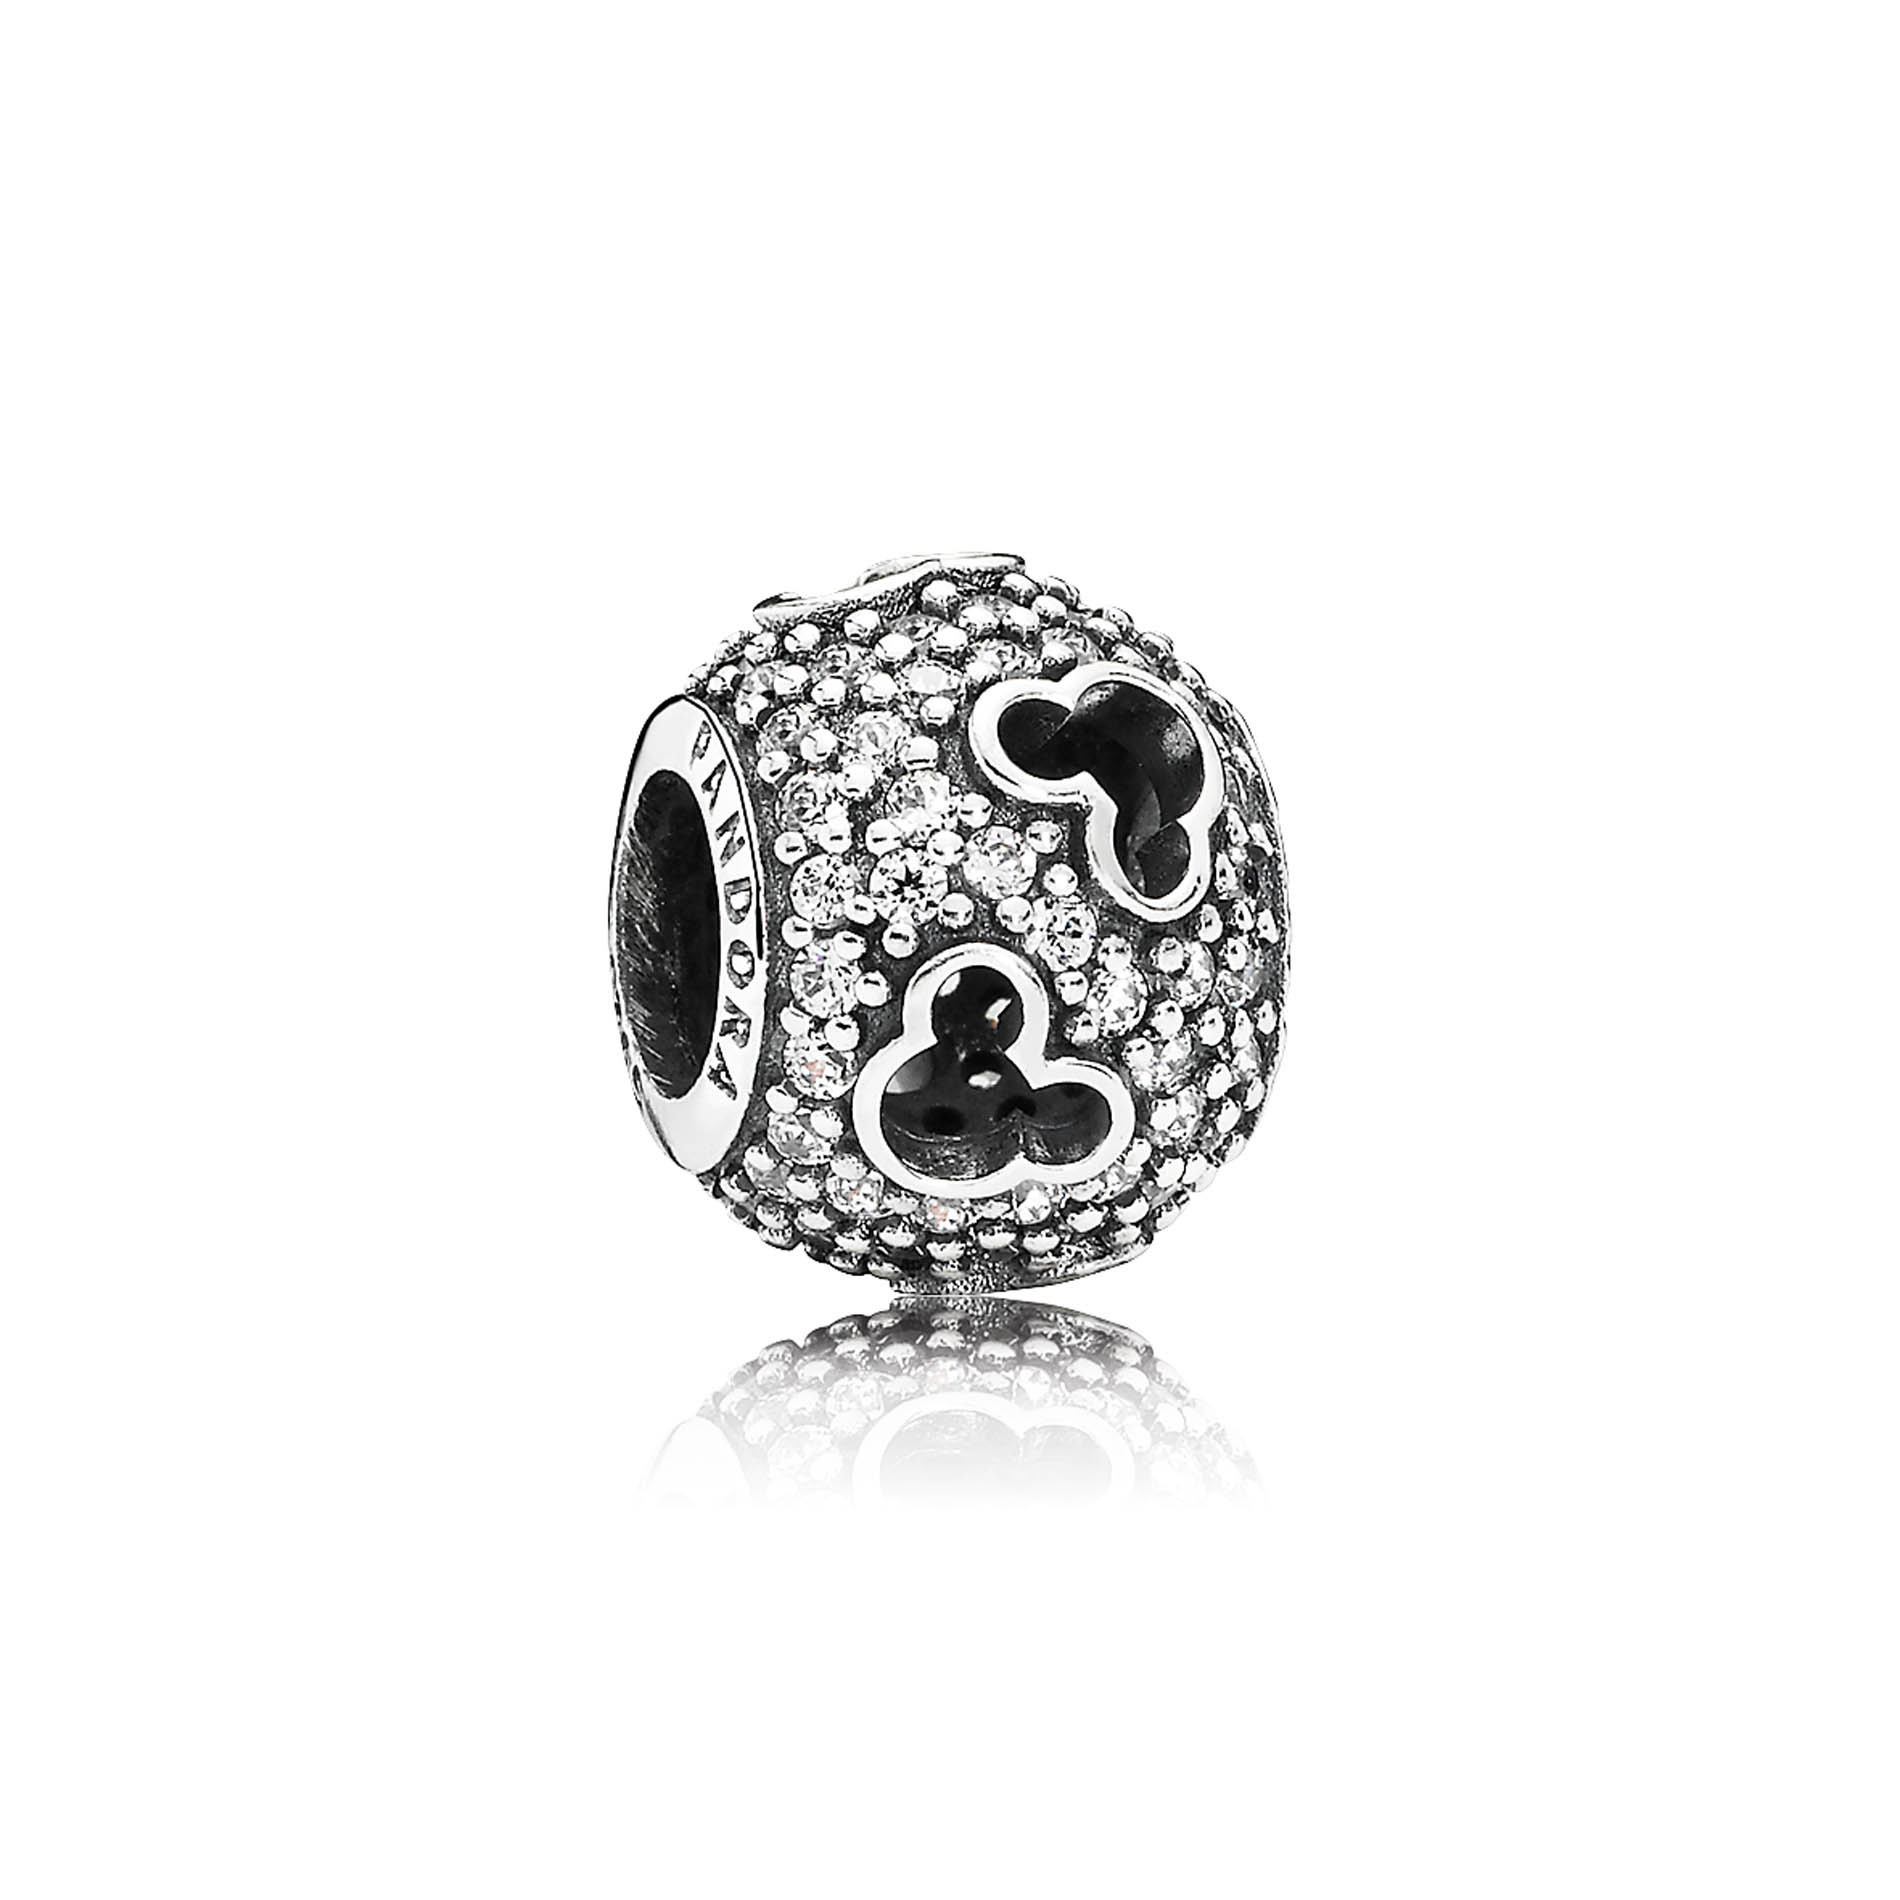 PANDORA's Mickey Silhouettes charm. PANDORA introduces a sterling silver clear pave charm with intricate cutouts inspired by Mickey's instantly recognizable silhouette